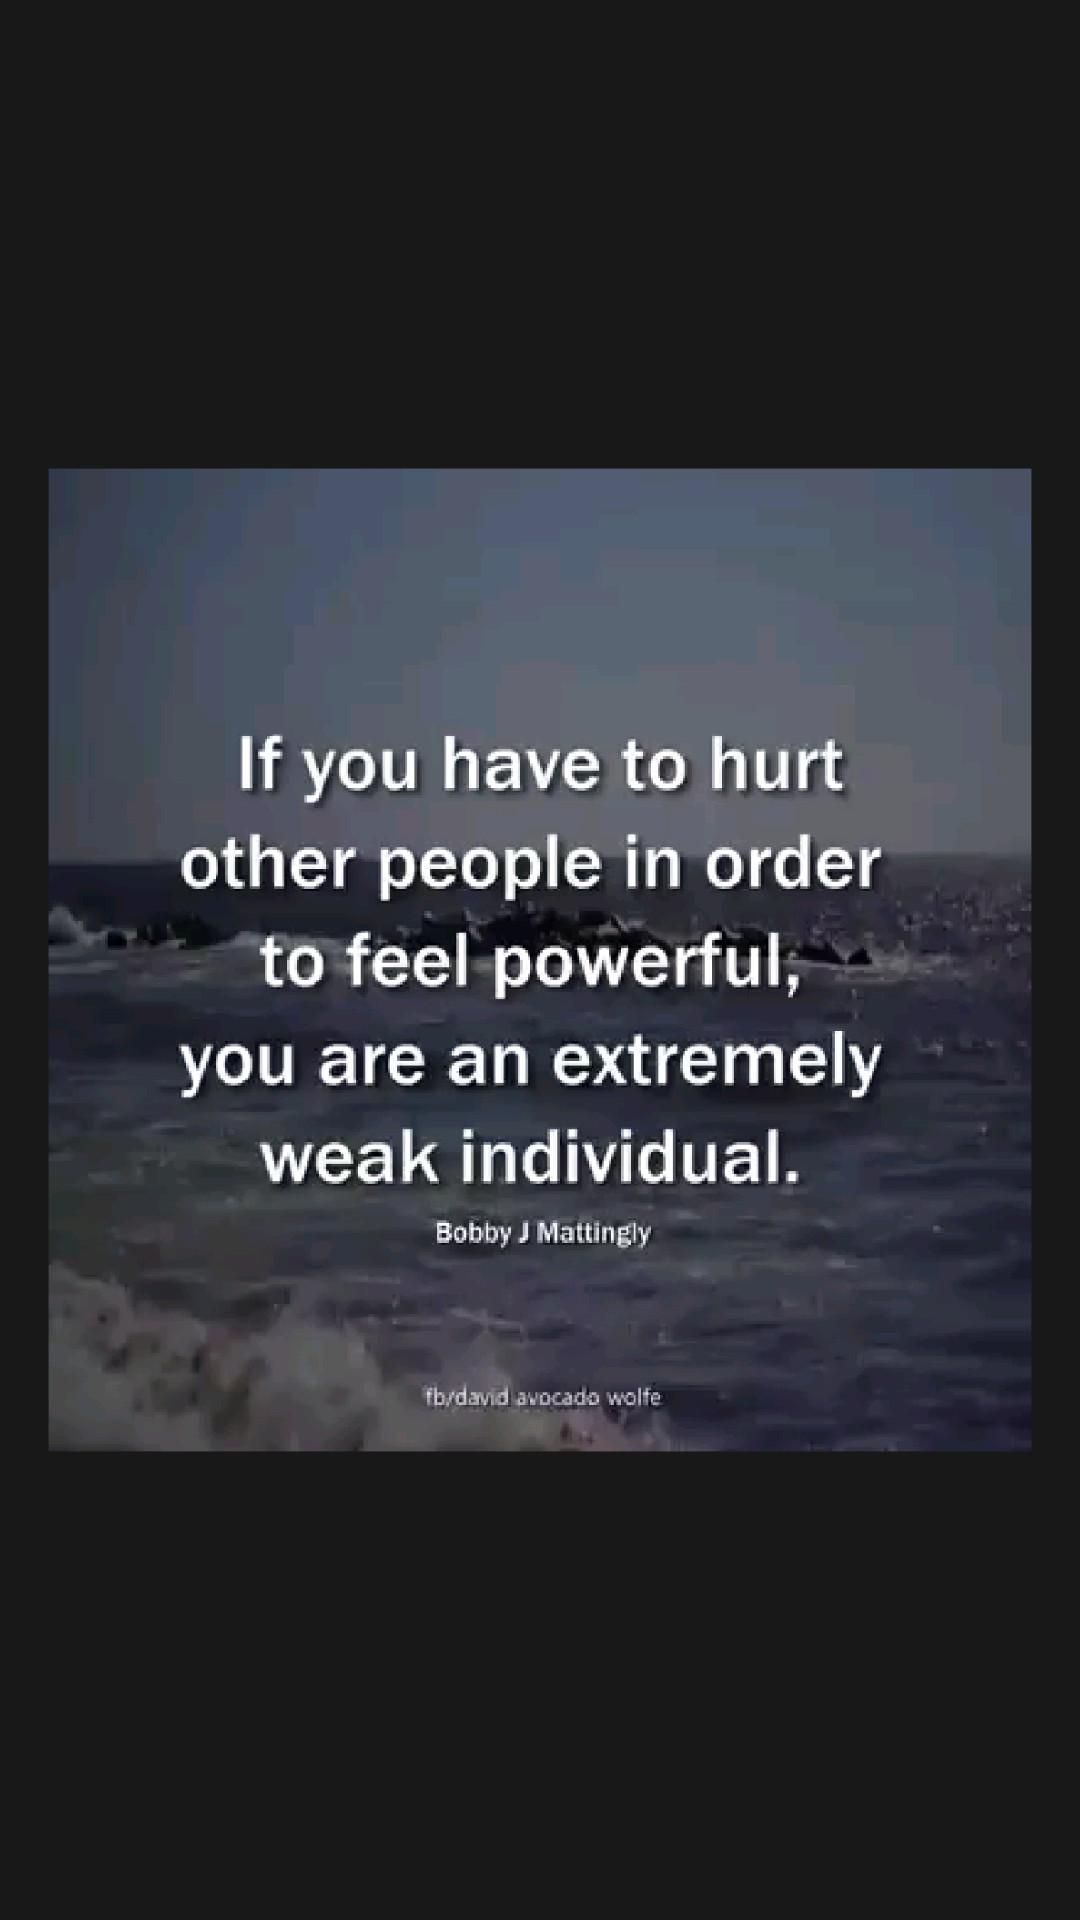 If you hurt other people in order to feel powerful. you are an extremely weak individual.